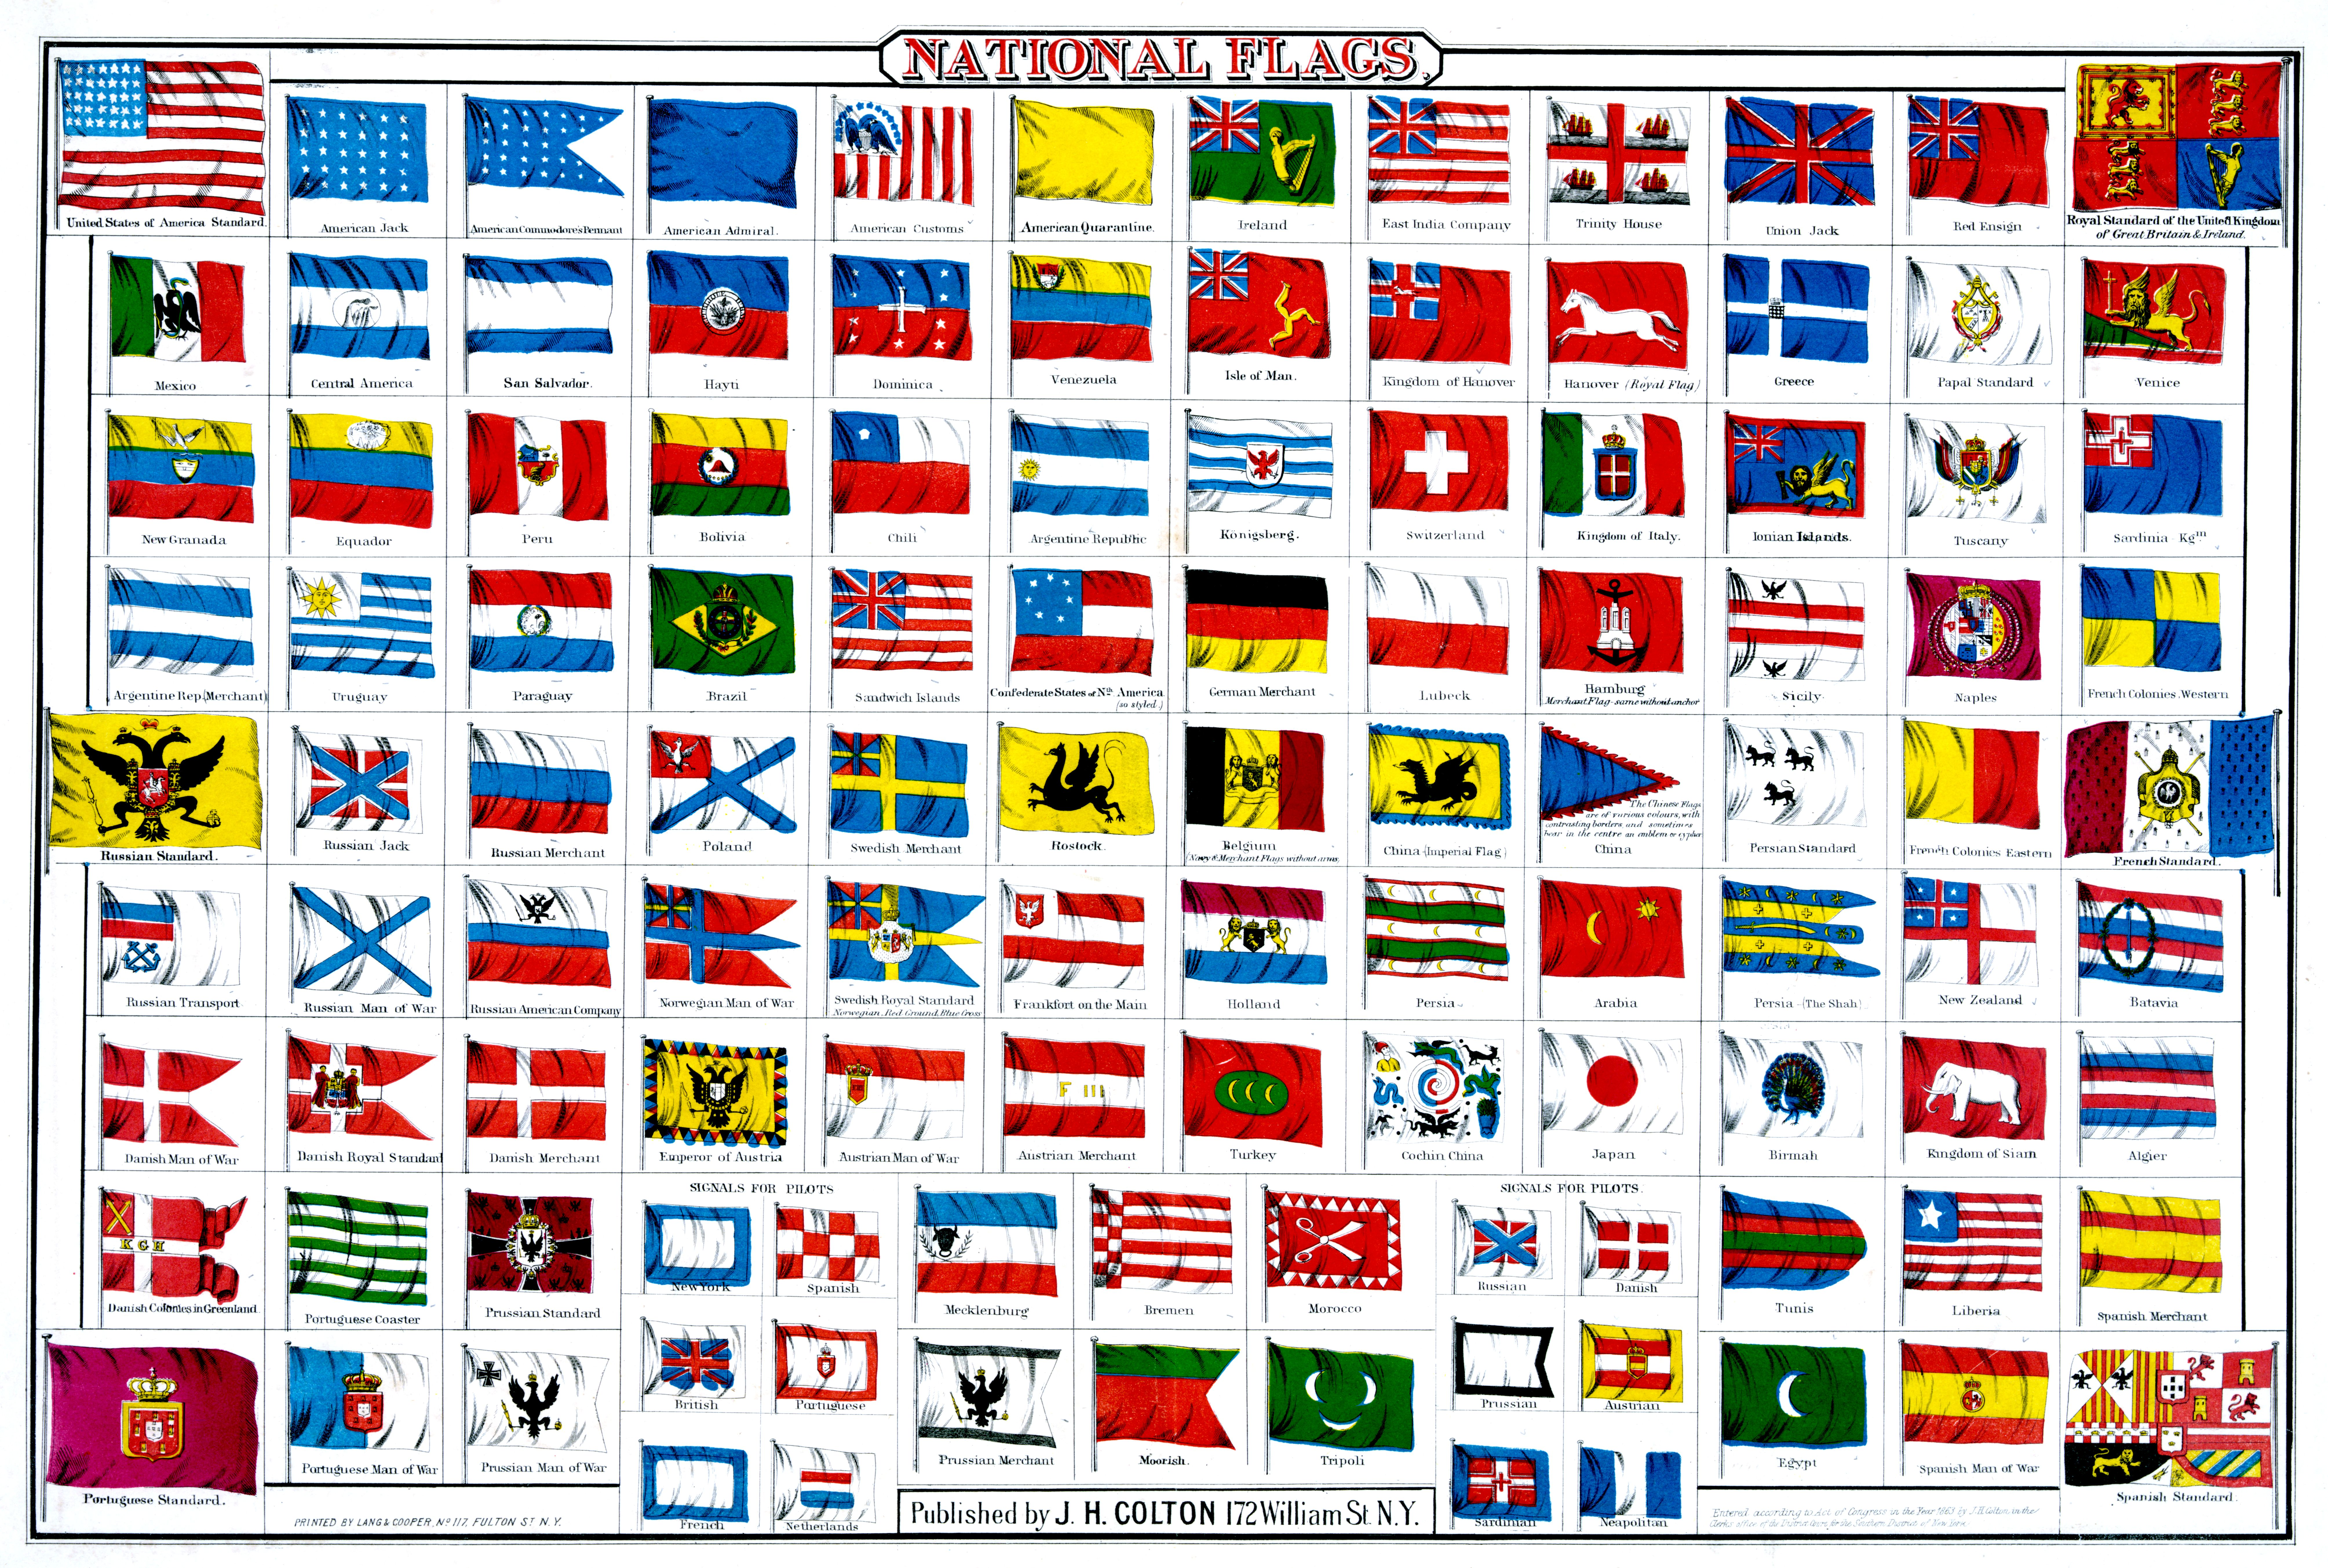 National Flags Of The World Published By J H Colton C